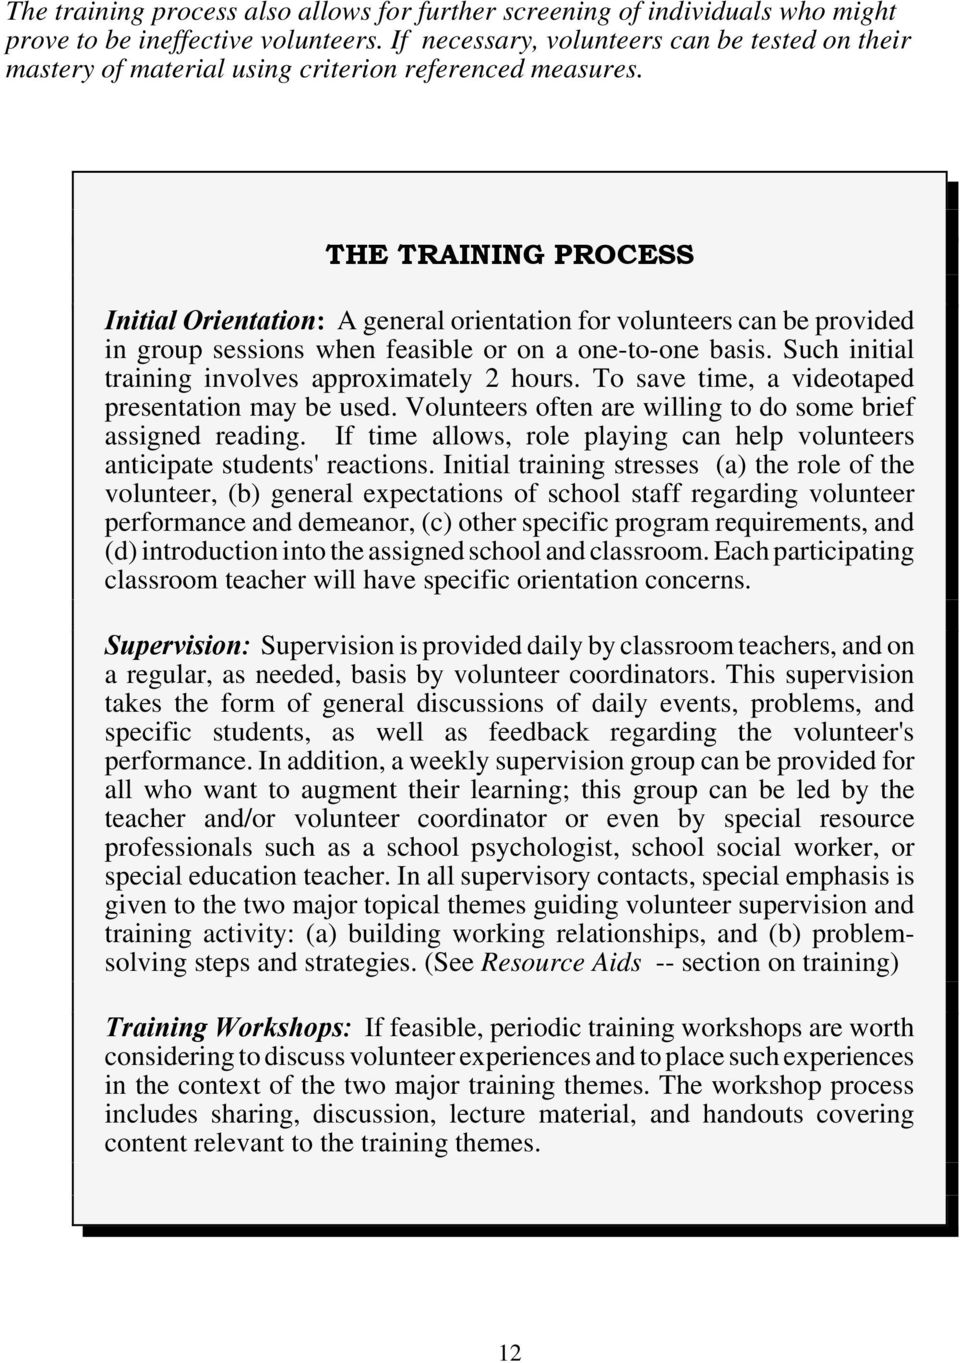 THE TRAINING PROCESS Initial Orientation: A general orientation for volunteers can be provided in group sessions when feasible or on a one-to-one basis.